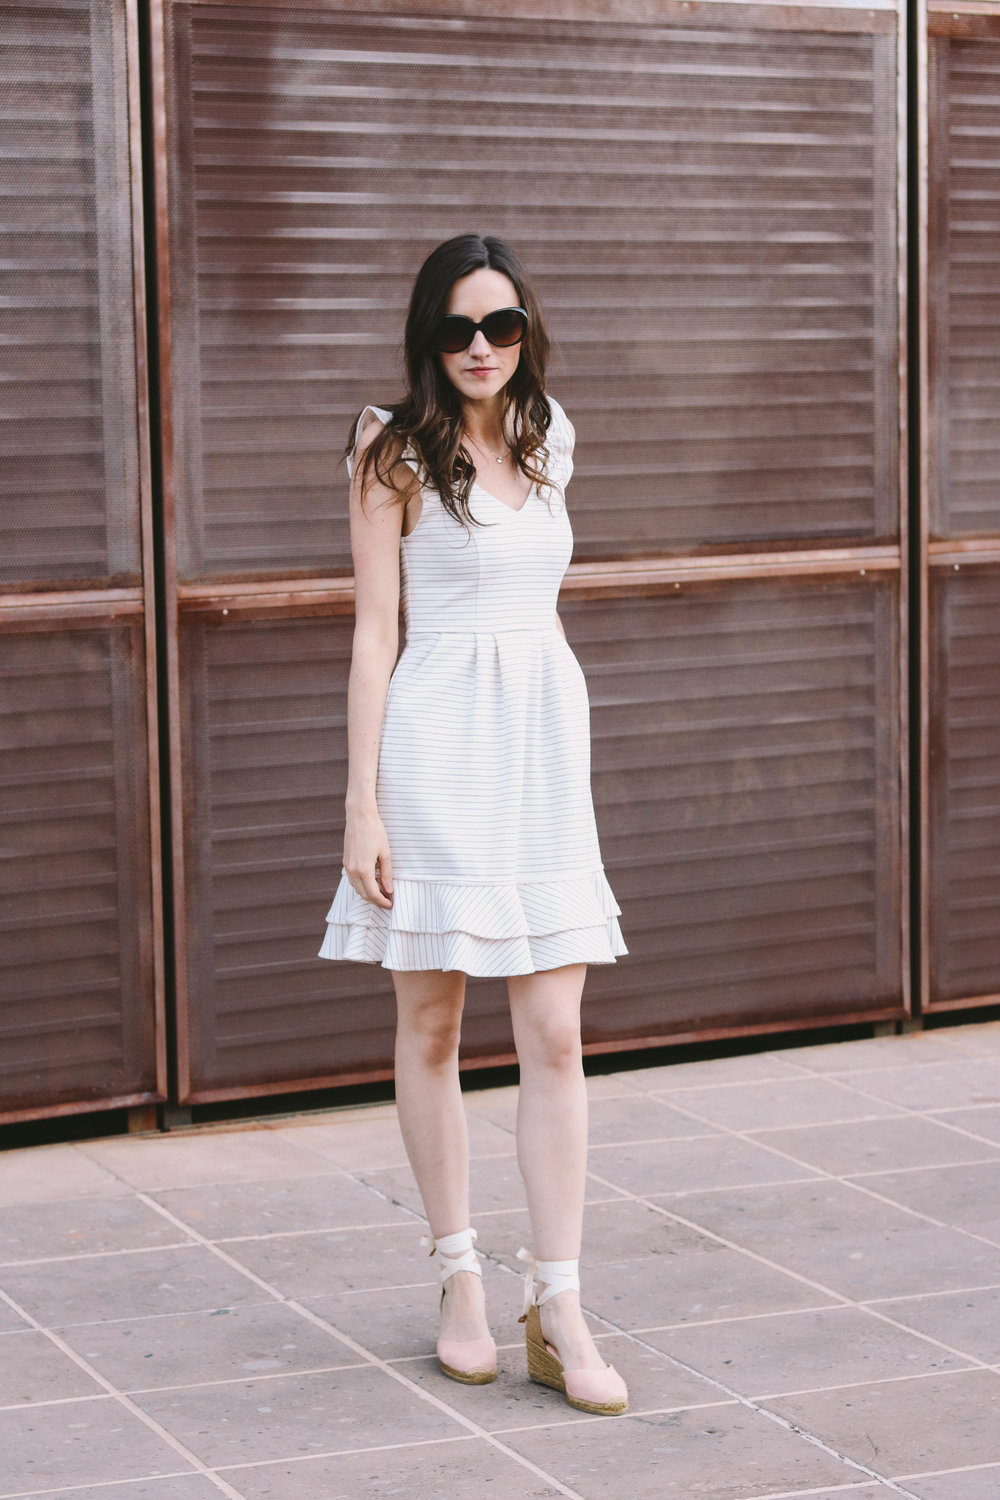 bb-white-dresses-spring-001 (1 of 1).jpg